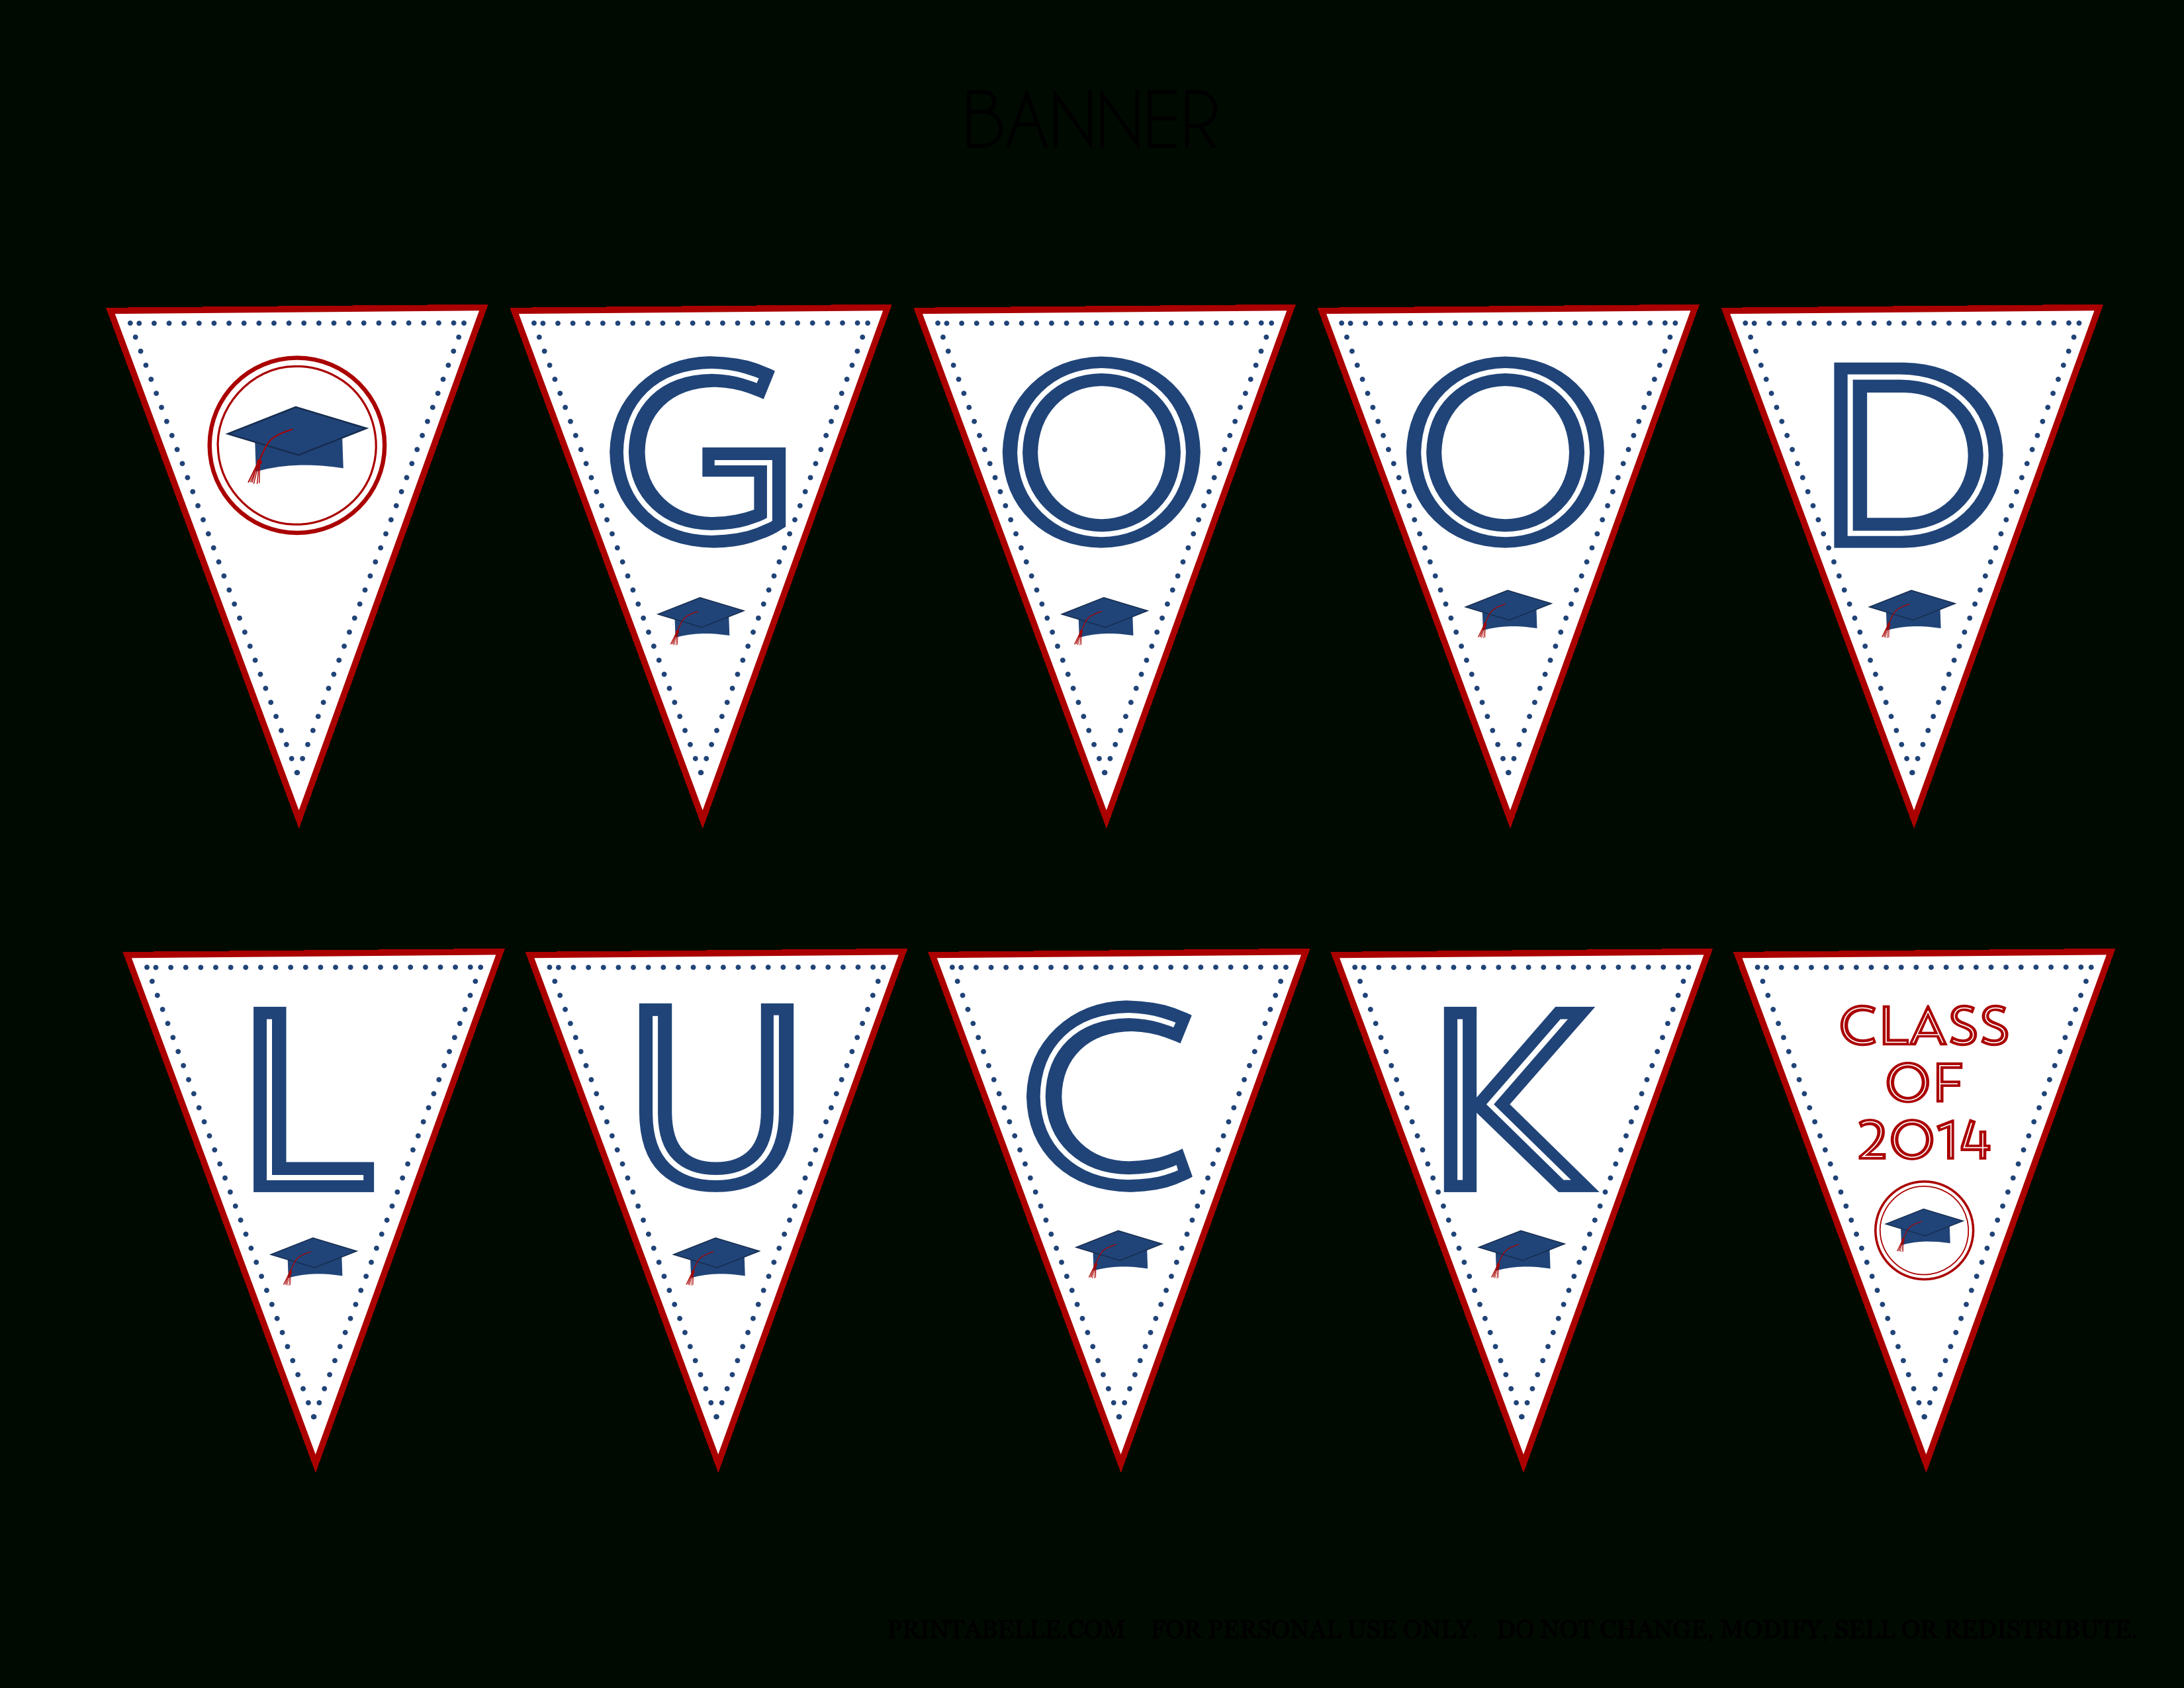 Free 2014 Graduation Party Printables From Printabelle With With Good Luck Banner Template